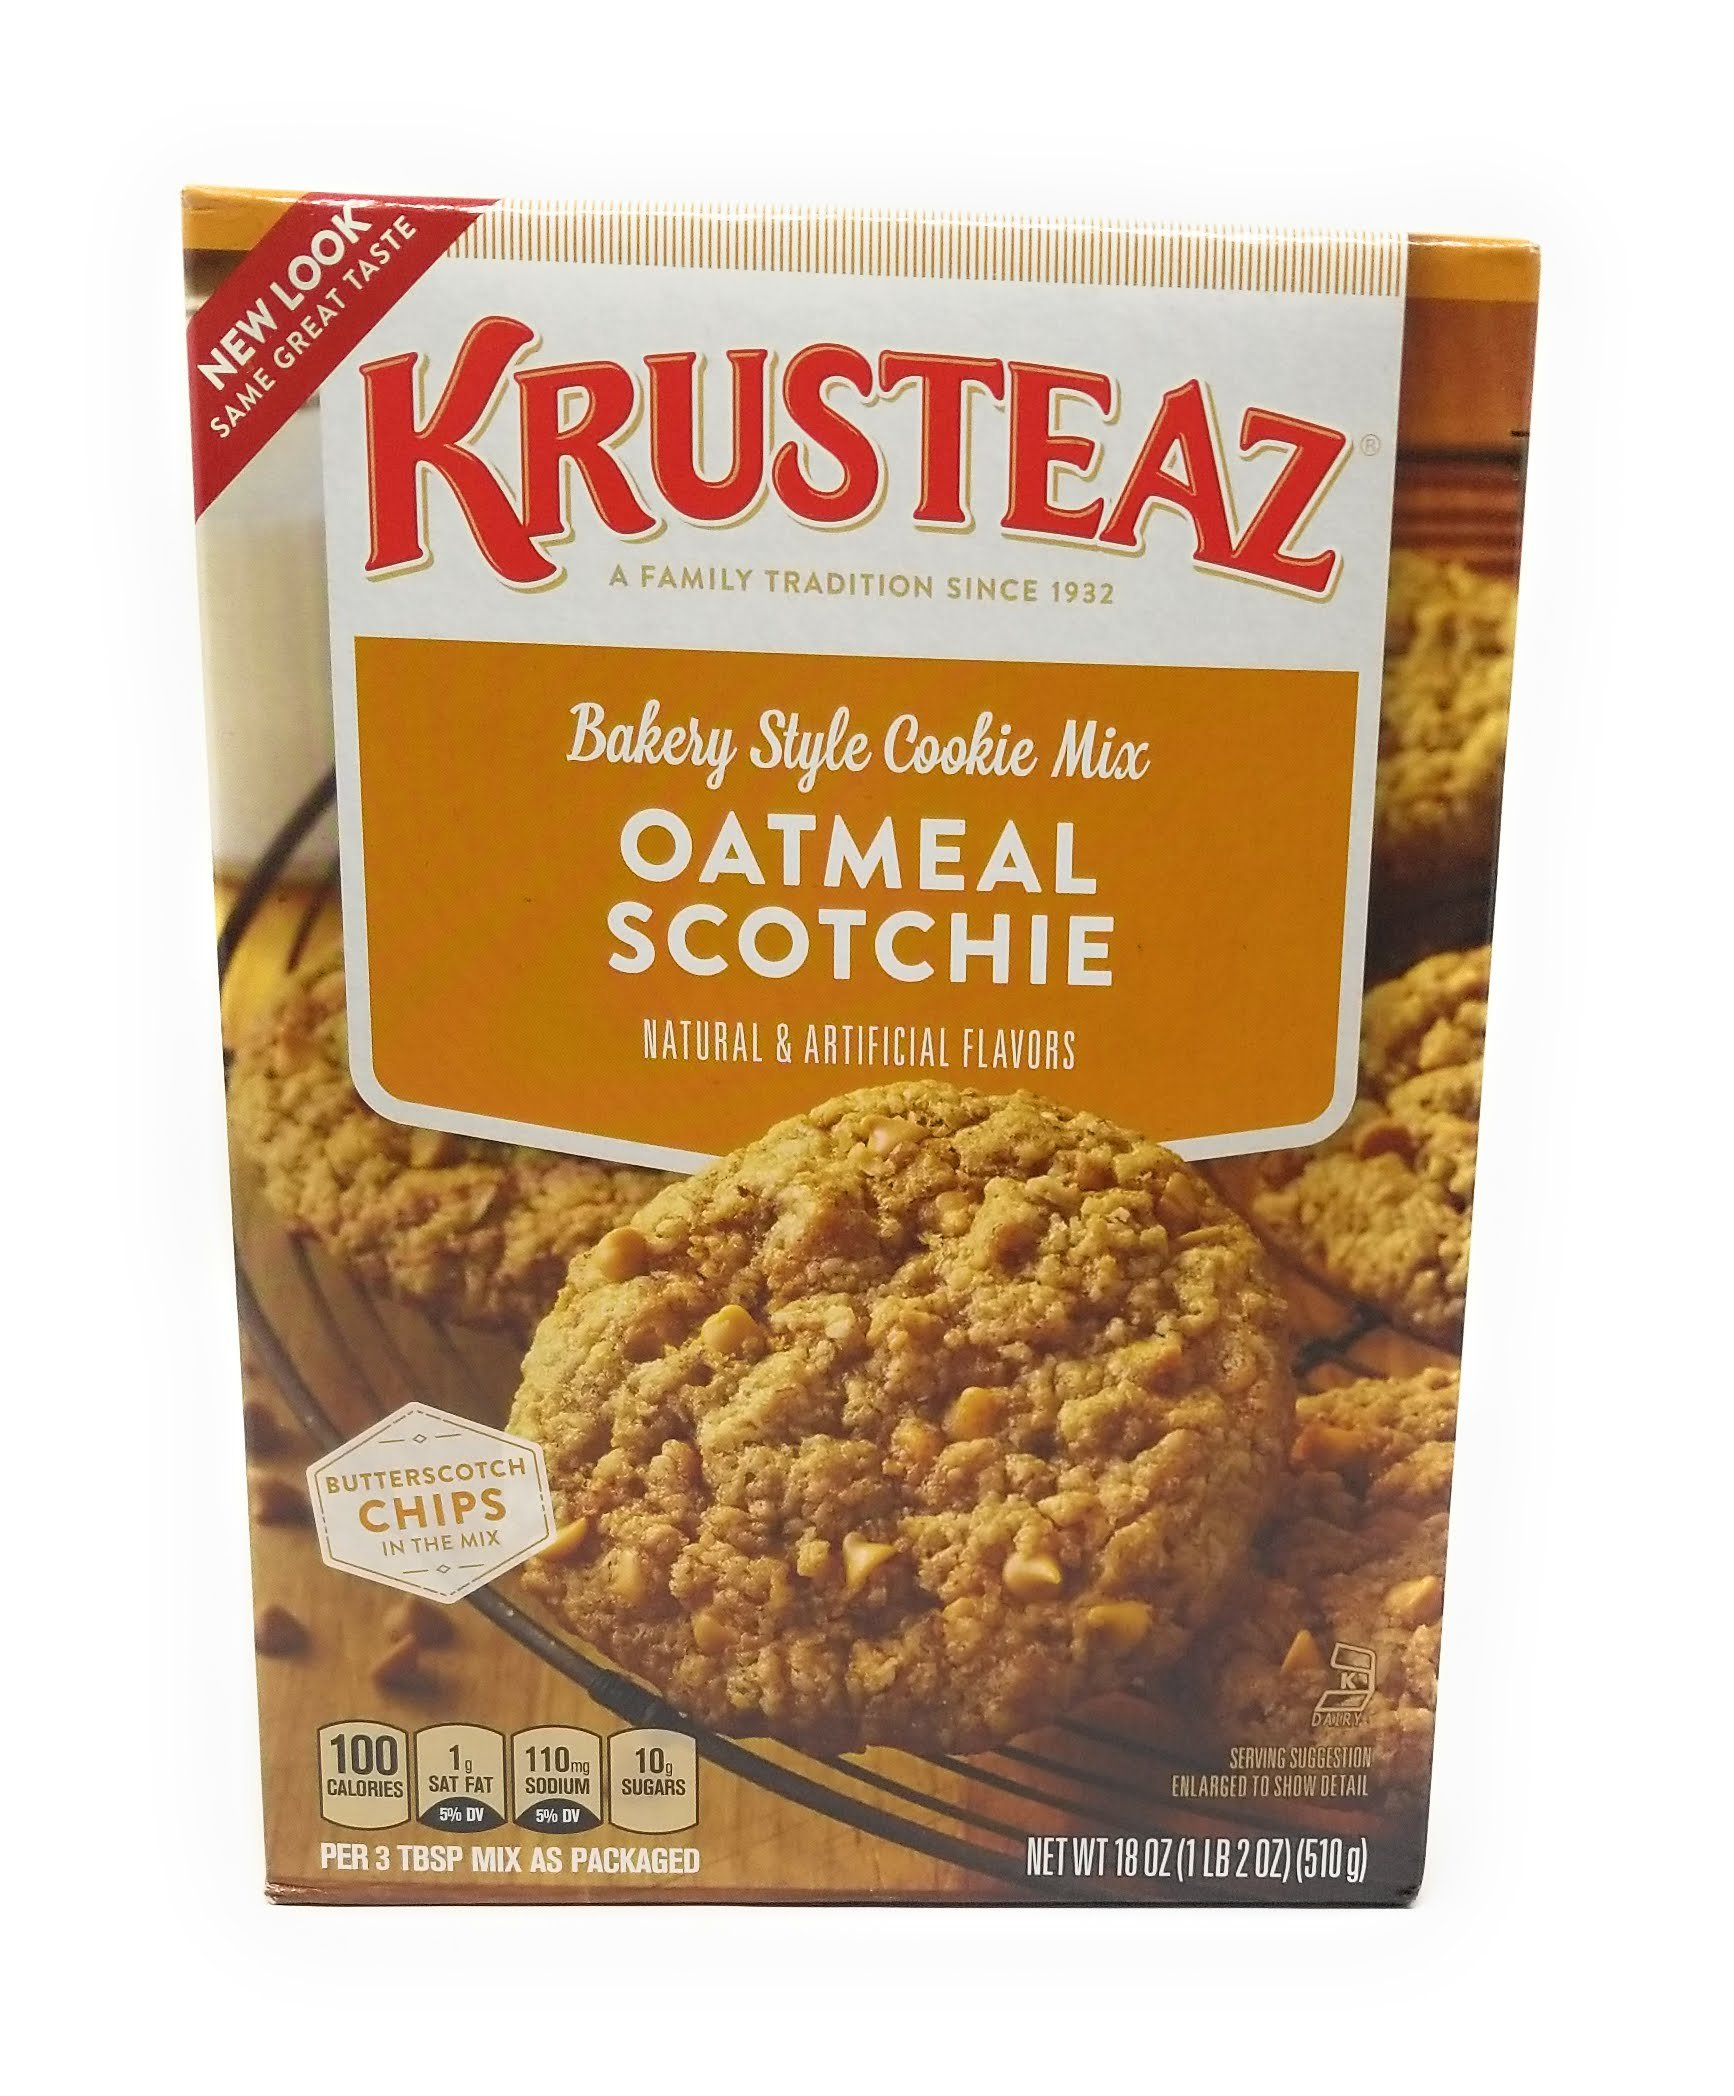 Krusteaz, Oatmeal Scotchie Cookie Mix, 18oz Box (Pack of 3)